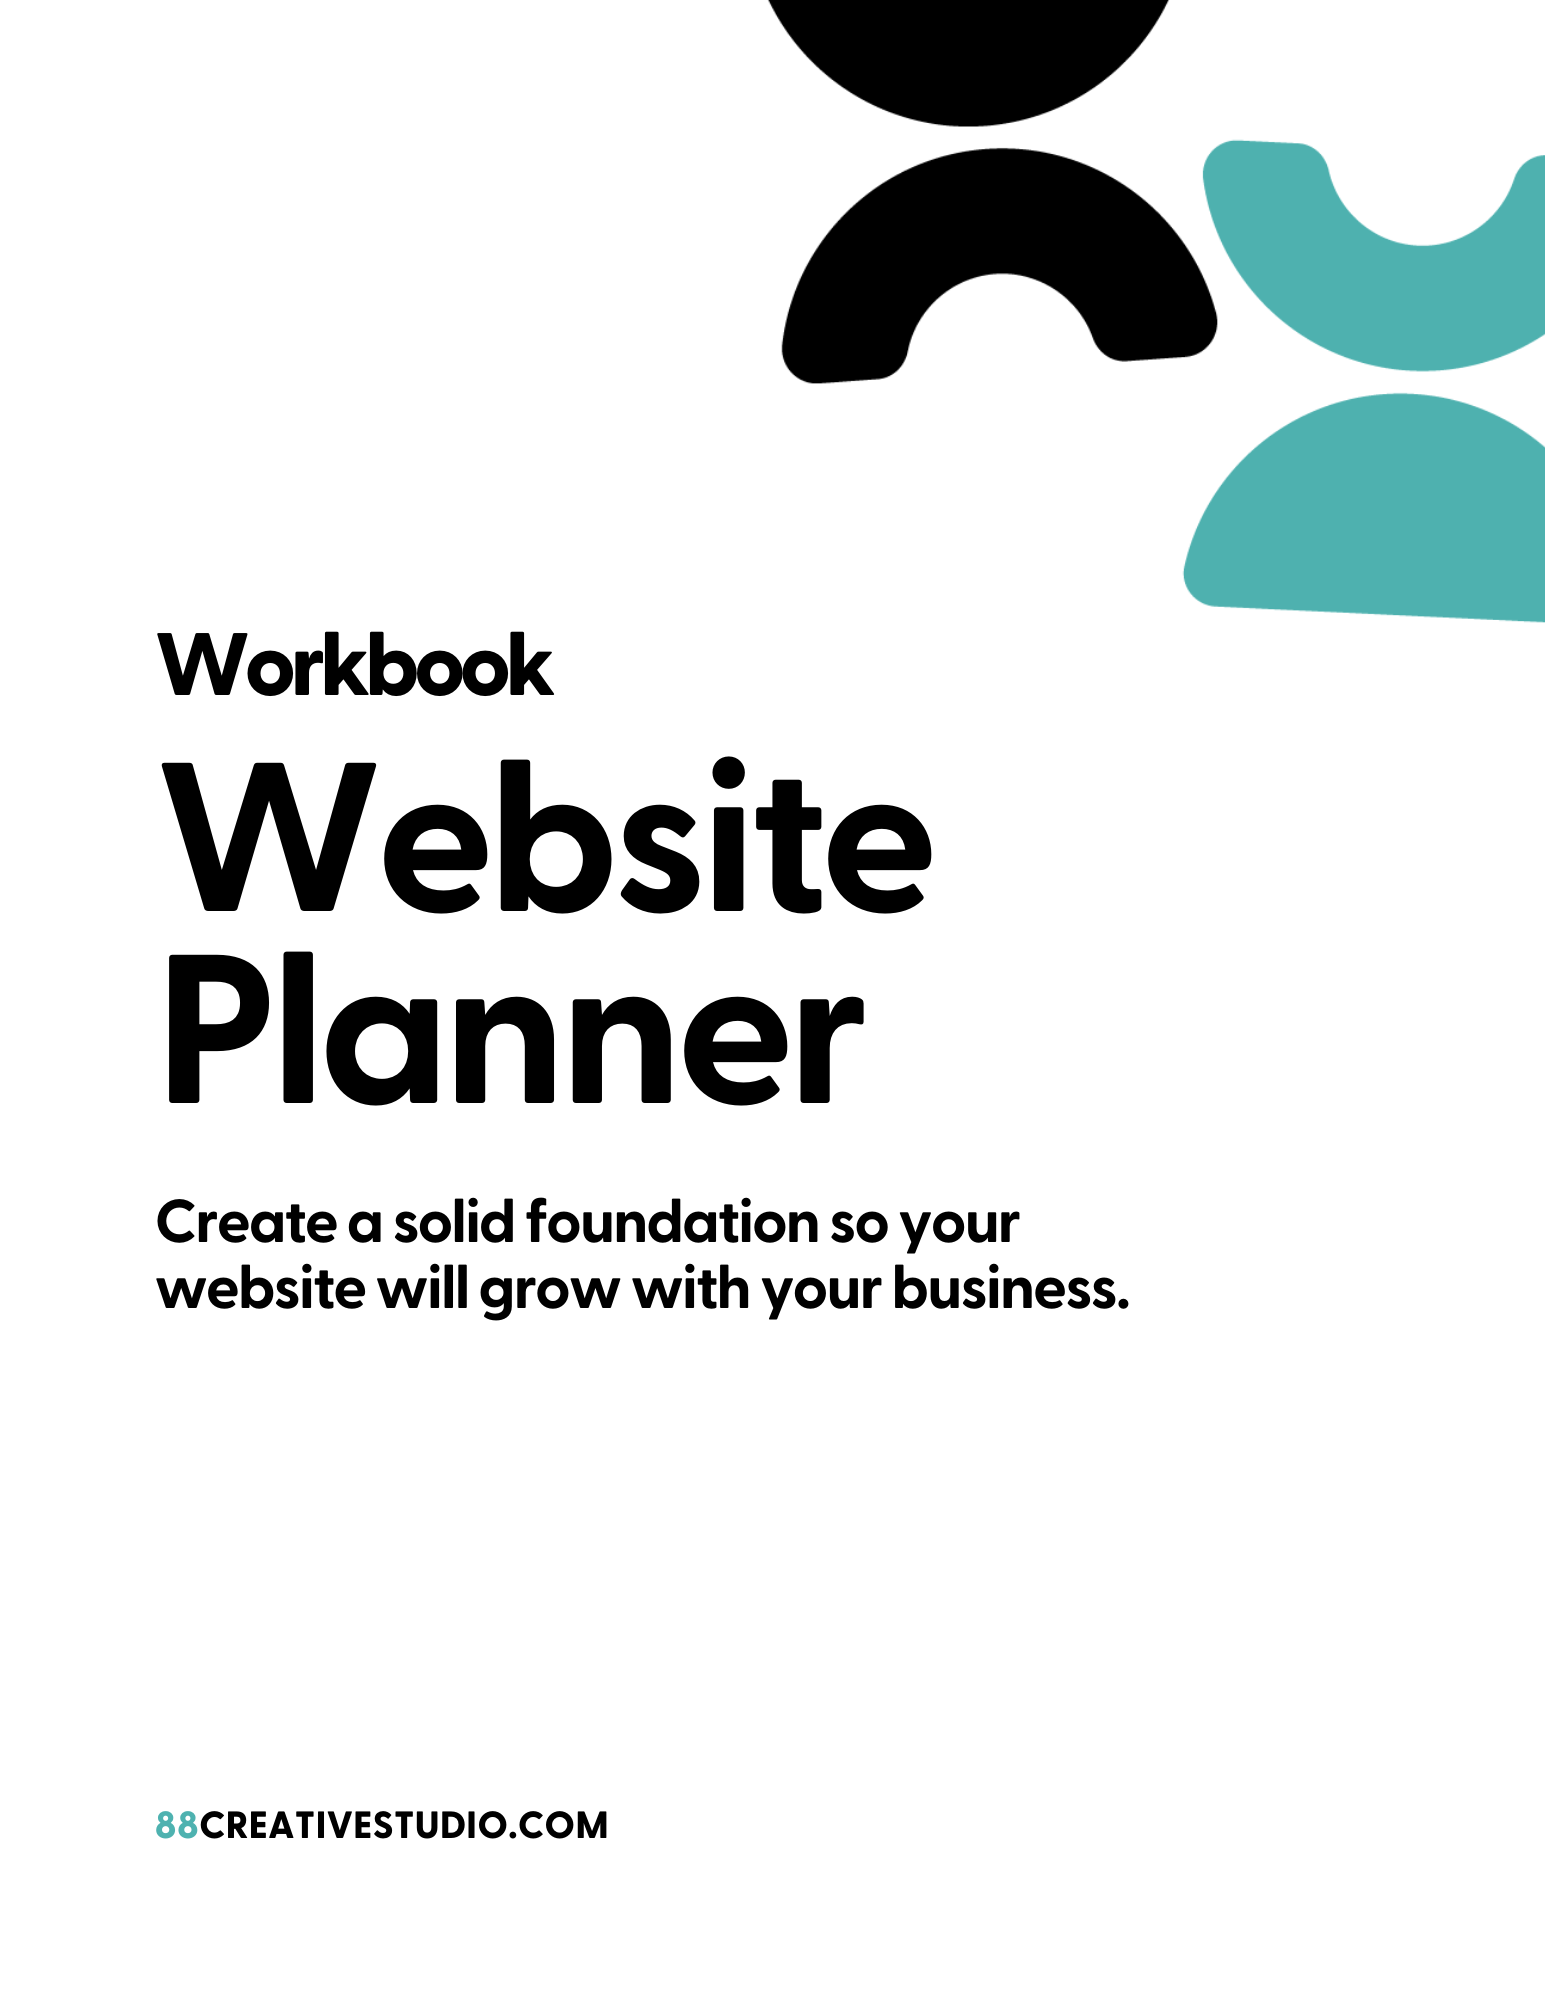 Workbook Cover - Website Planner